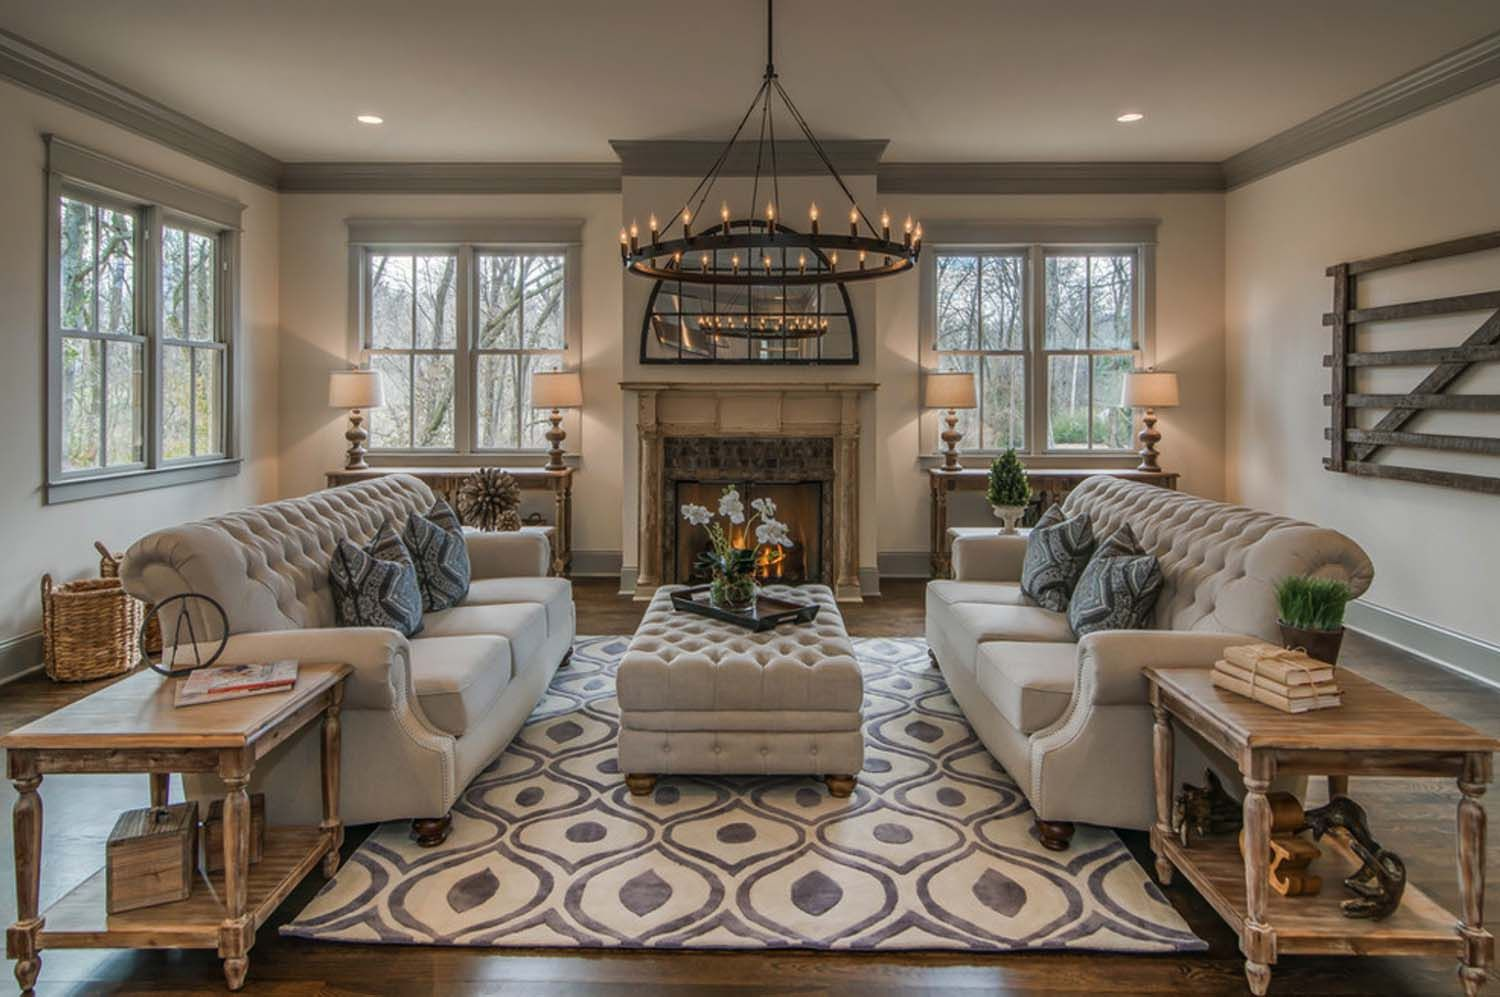 Tudor Style Inspired Dwelling With Reclaimed Barn Wood In Nashville Farm House Living Room Transitional Decor Living Room Transitional Living Rooms #tudor #style #living #room